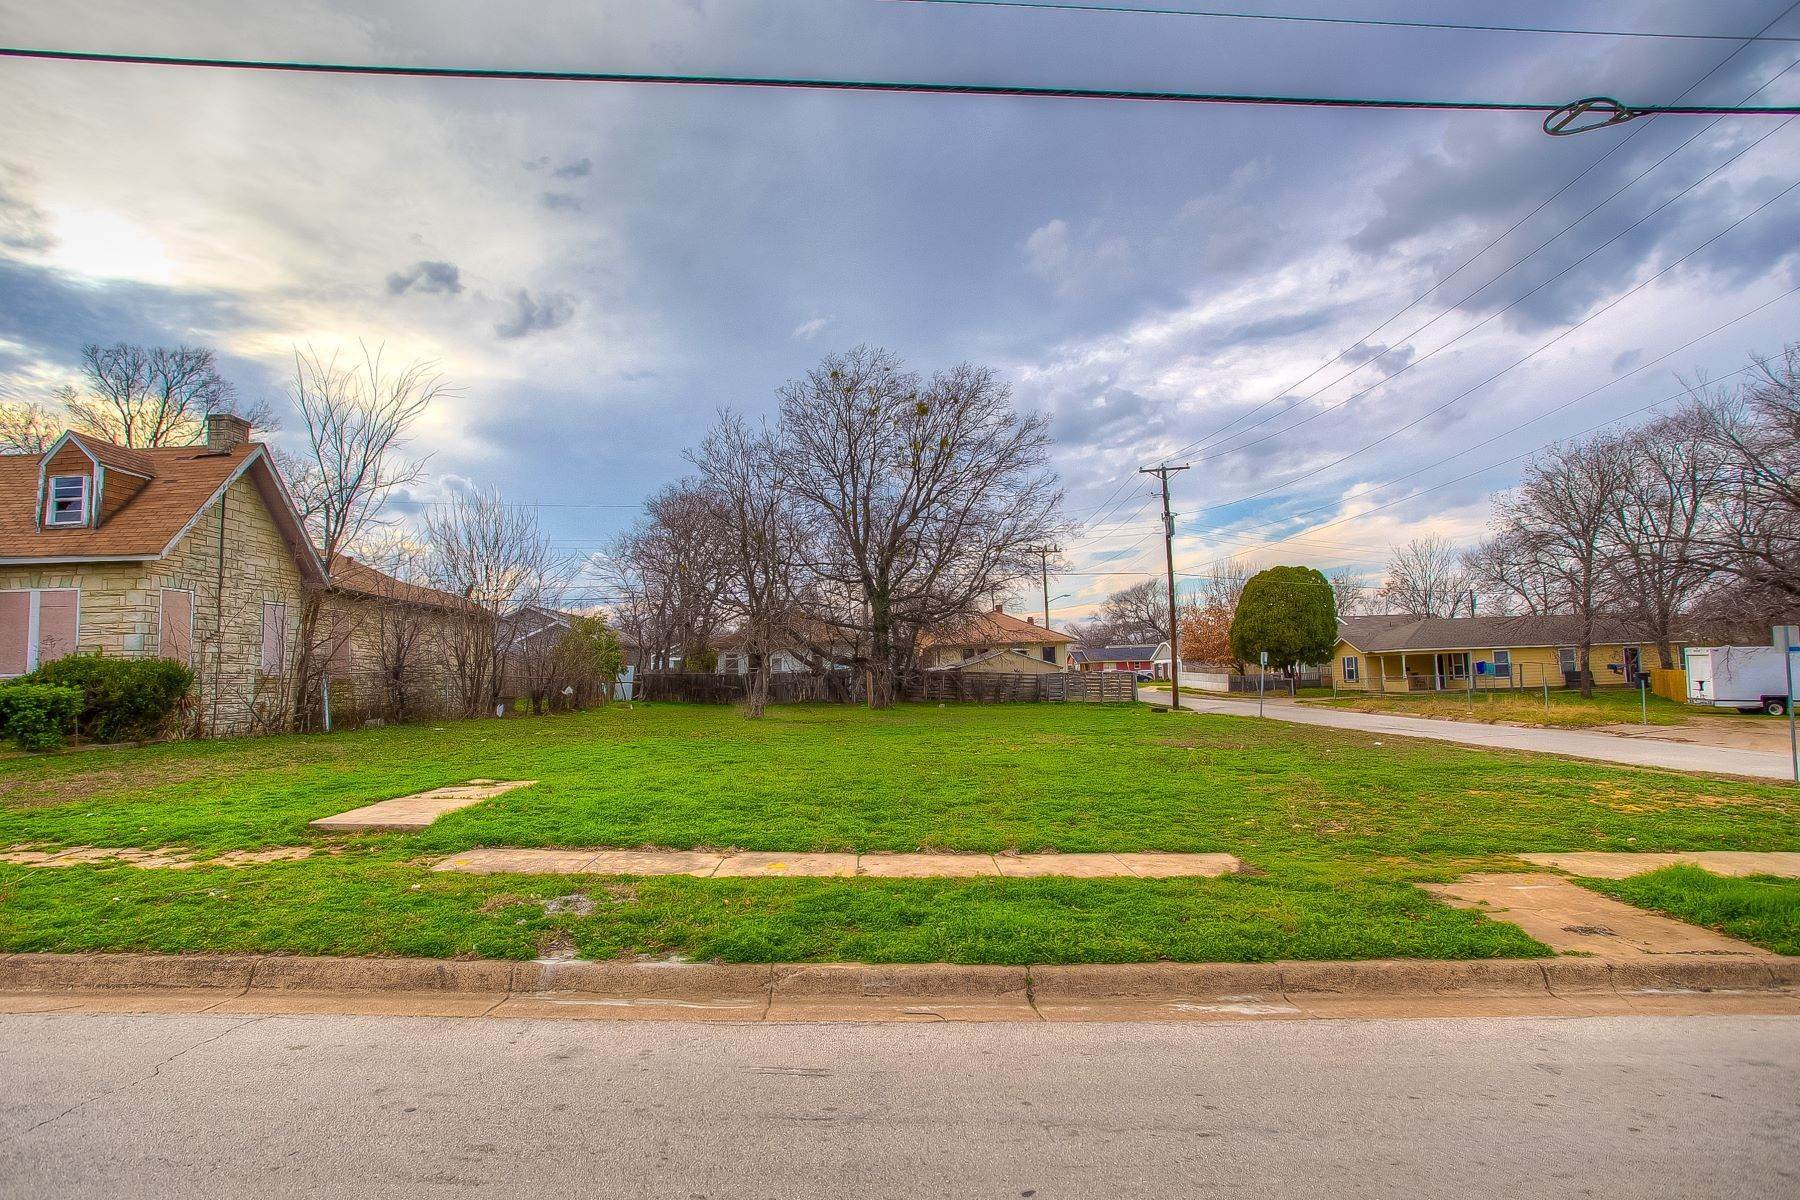 14. Land for Sale at Build your dream home on this over-sized lot 1300 New York Avenue Fort Worth, Texas 76104 United States